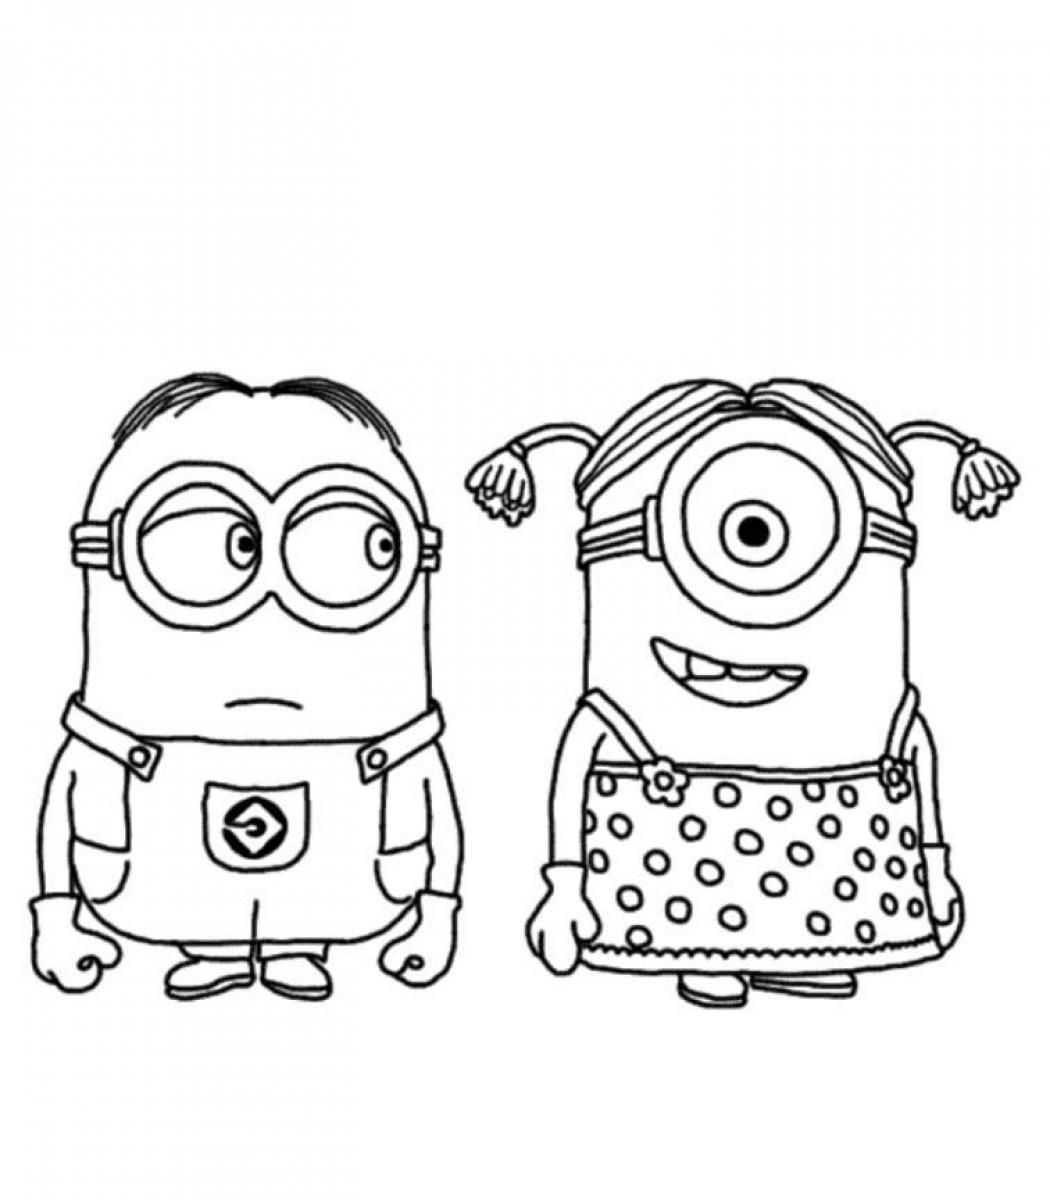 Minion Coloring Pages Printable Minion Coloring Pages